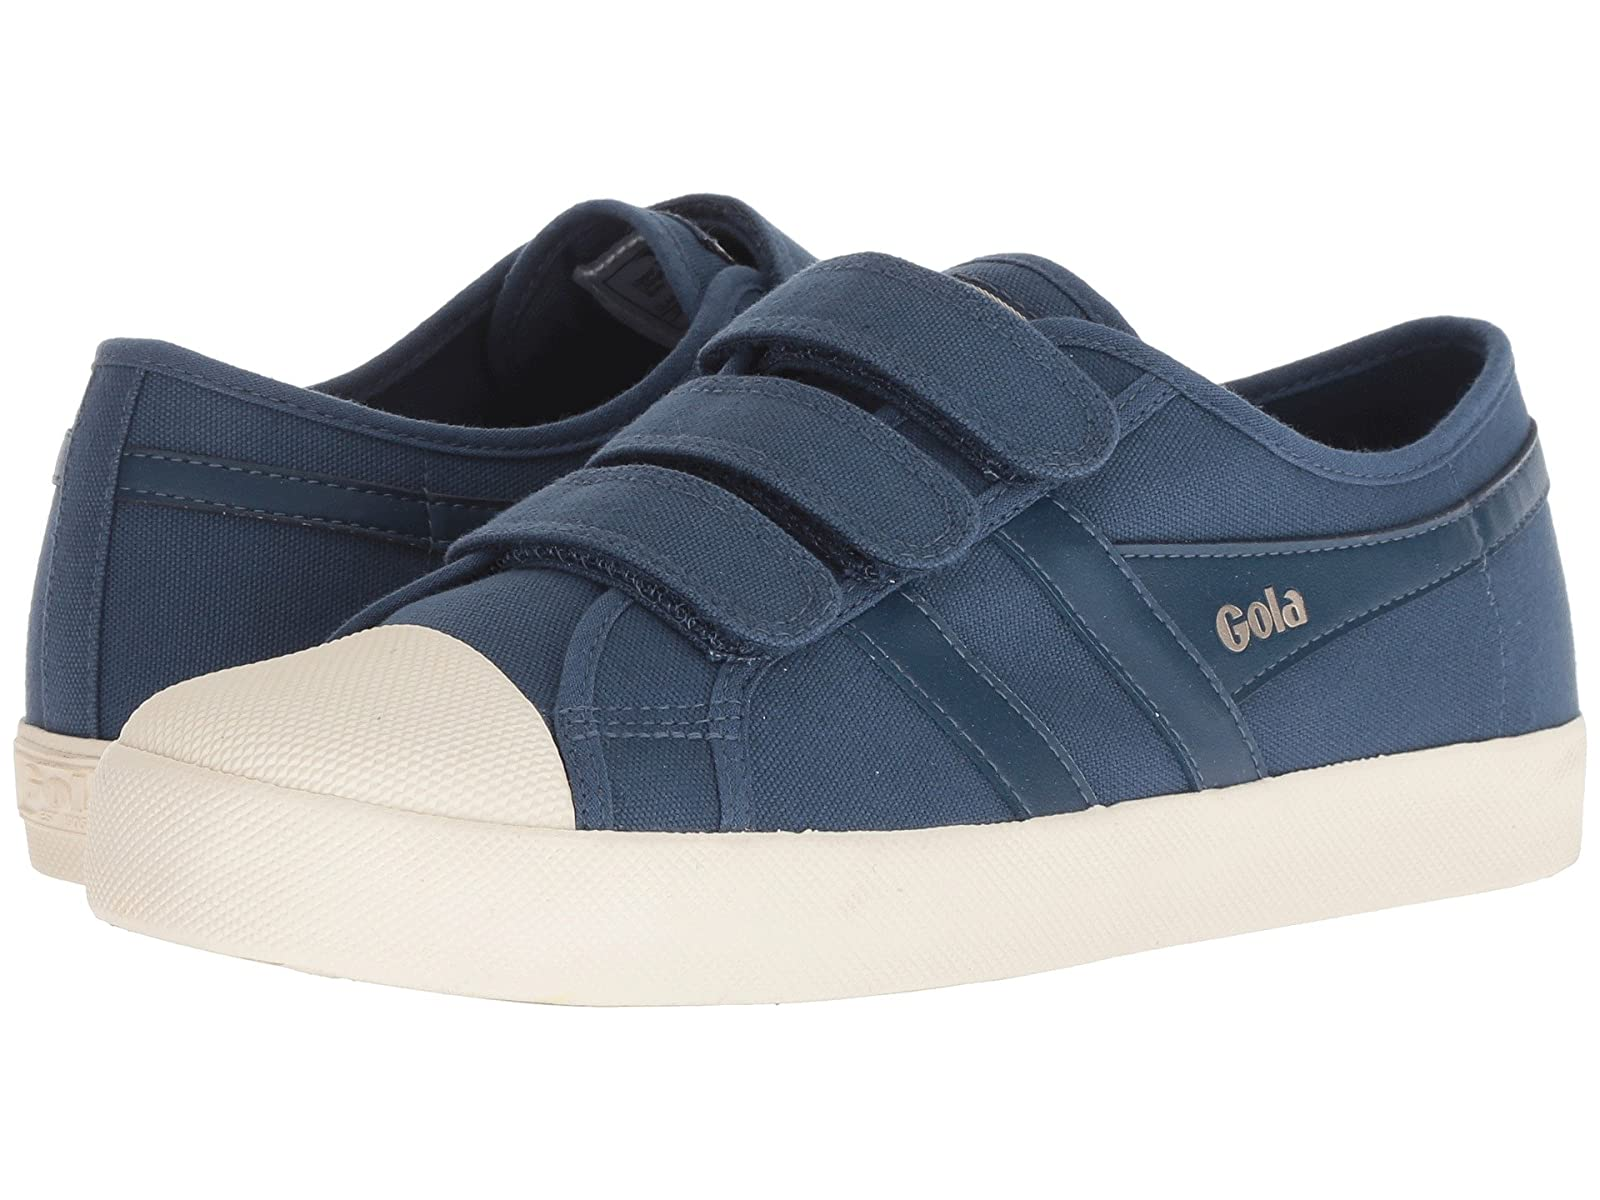 Gola Coaster VelcroAtmospheric grades have affordable shoes